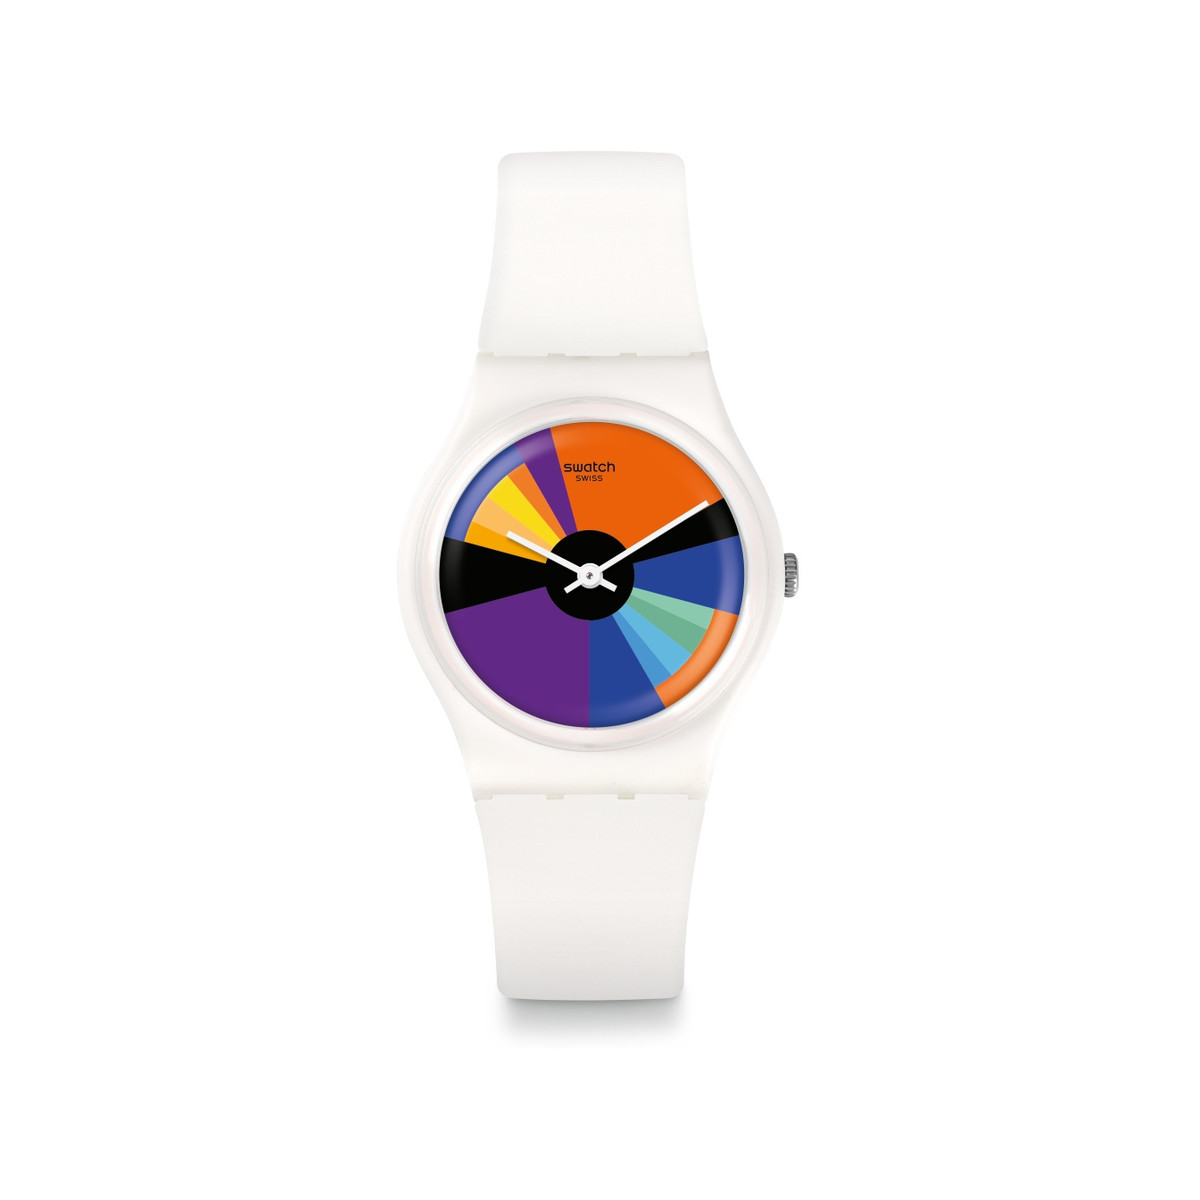 Montre Swatch mixte plastique blanc multicolore